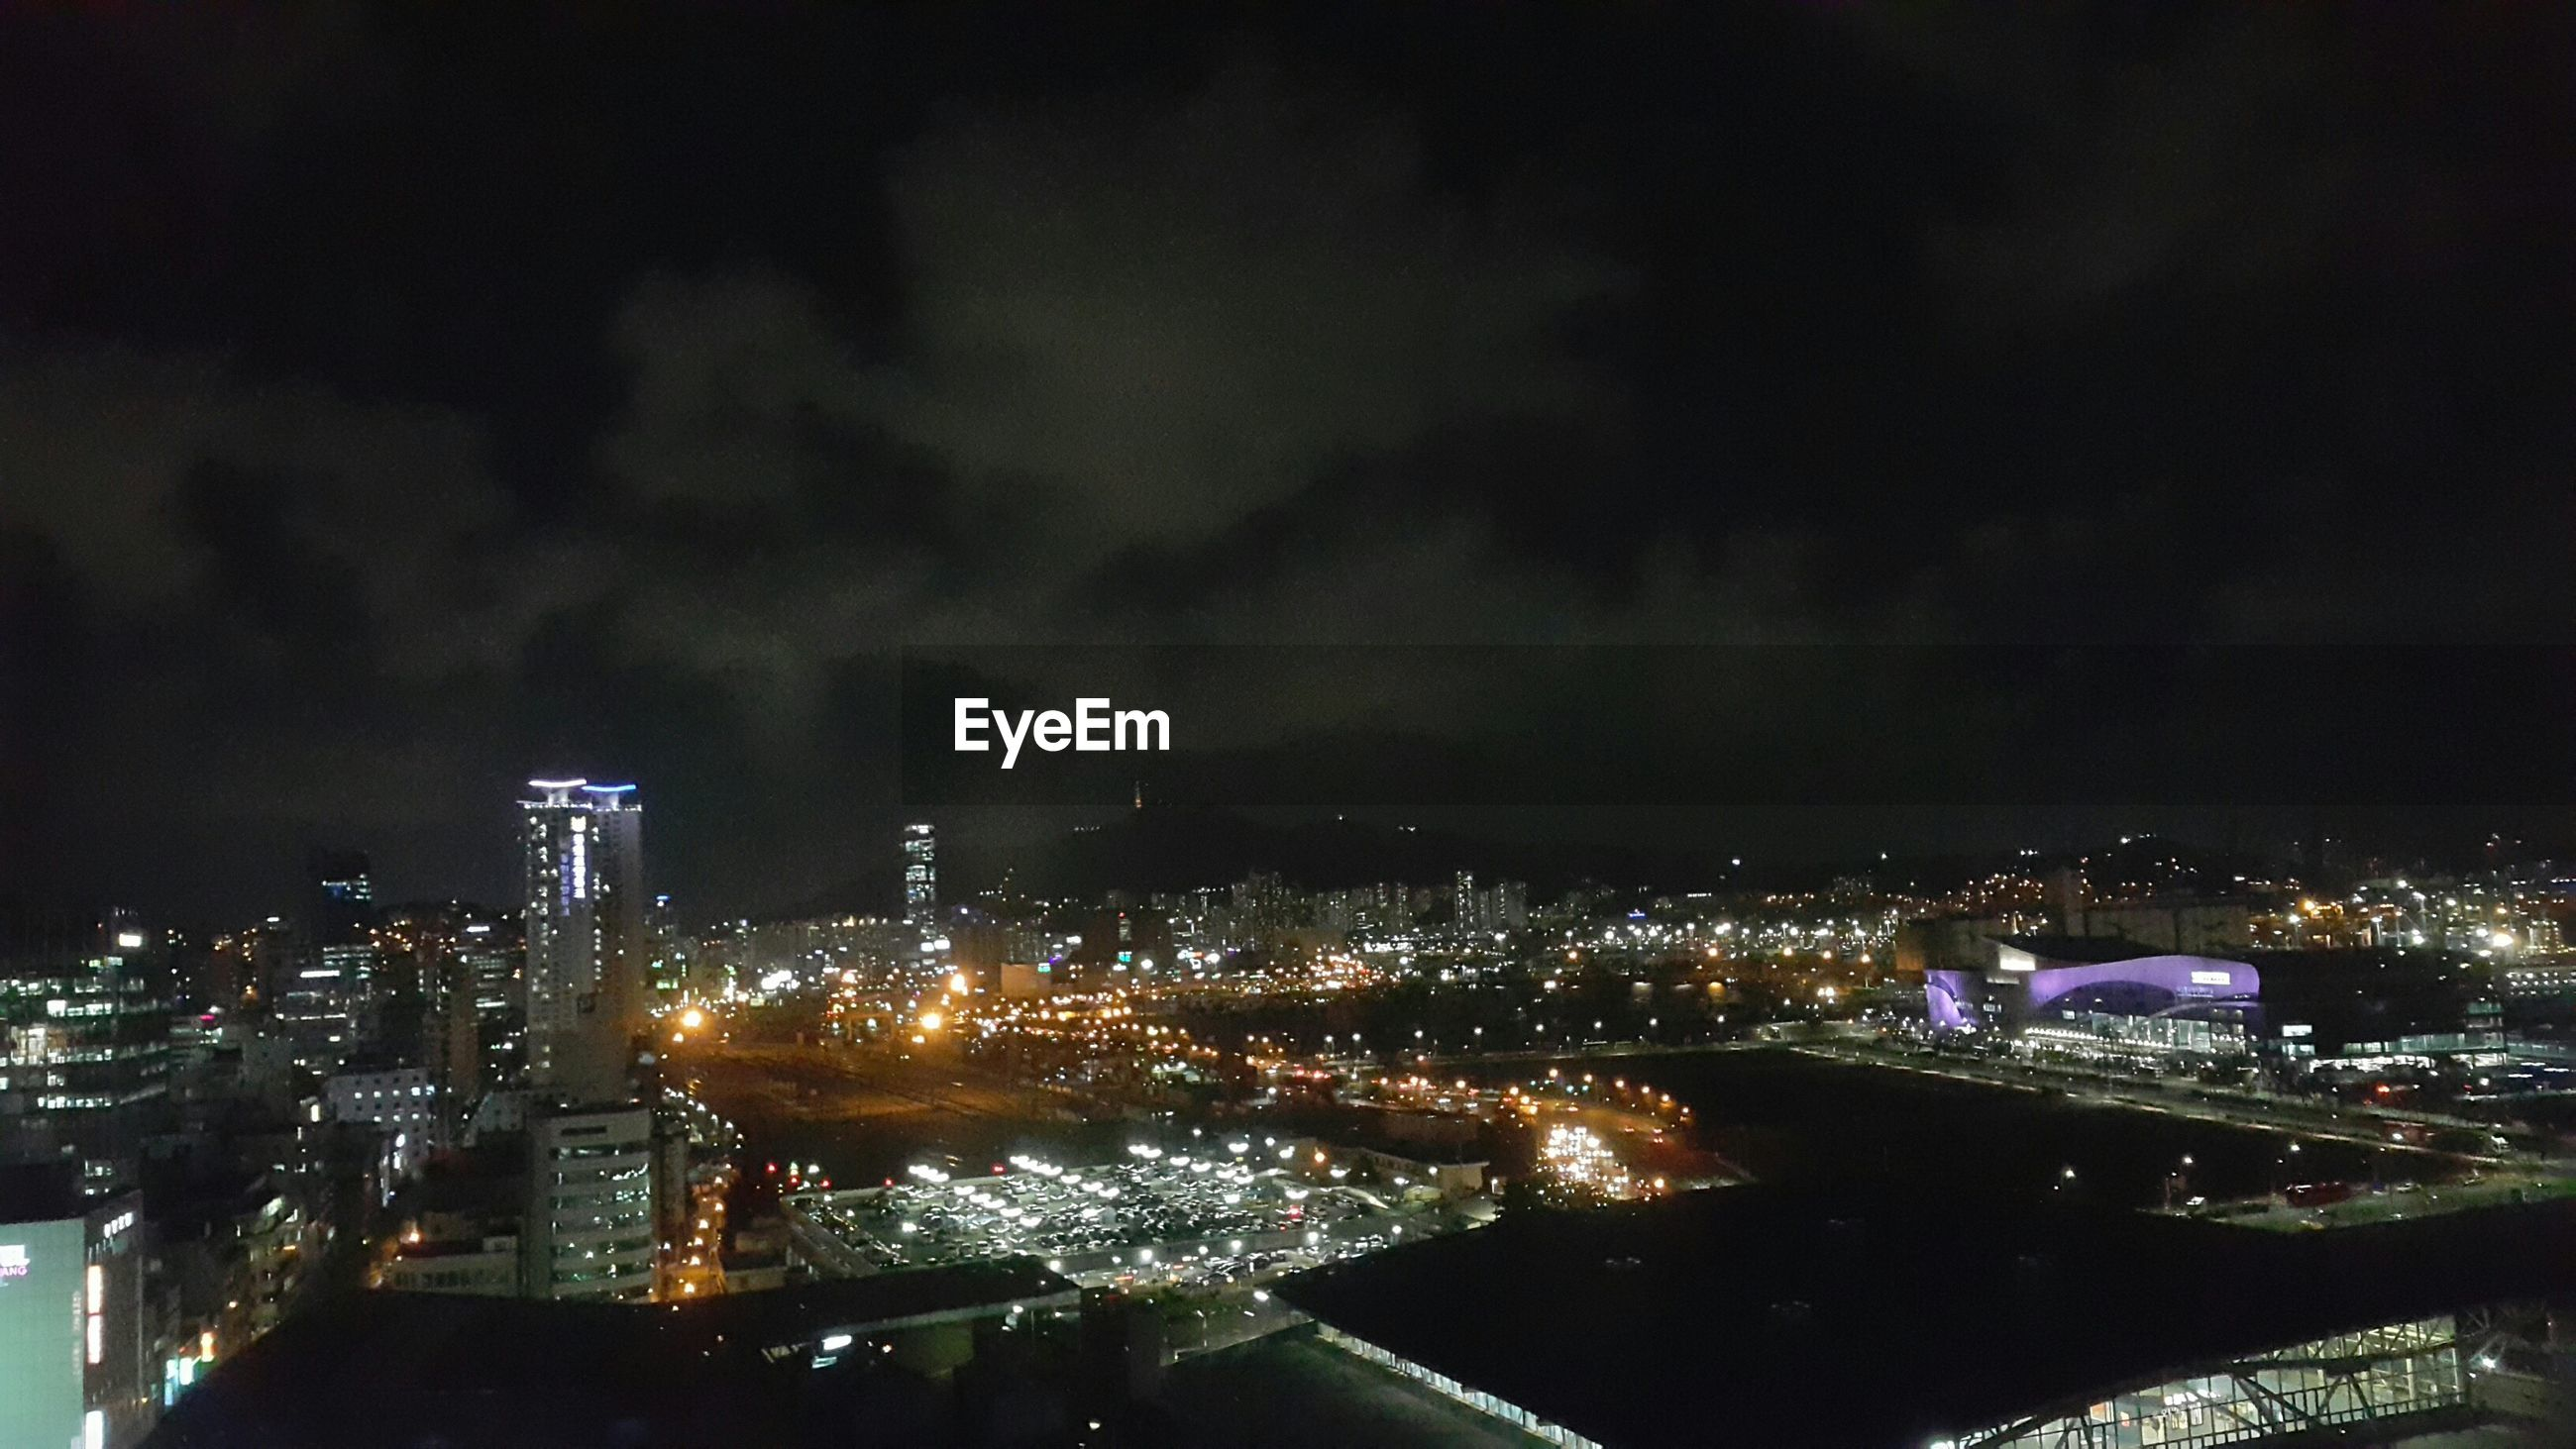 architecture, night, city, illuminated, building exterior, built structure, cityscape, sky, high angle view, crowded, skyscraper, residential district, modern, residential building, city life, river, cloud - sky, tower, no people, development